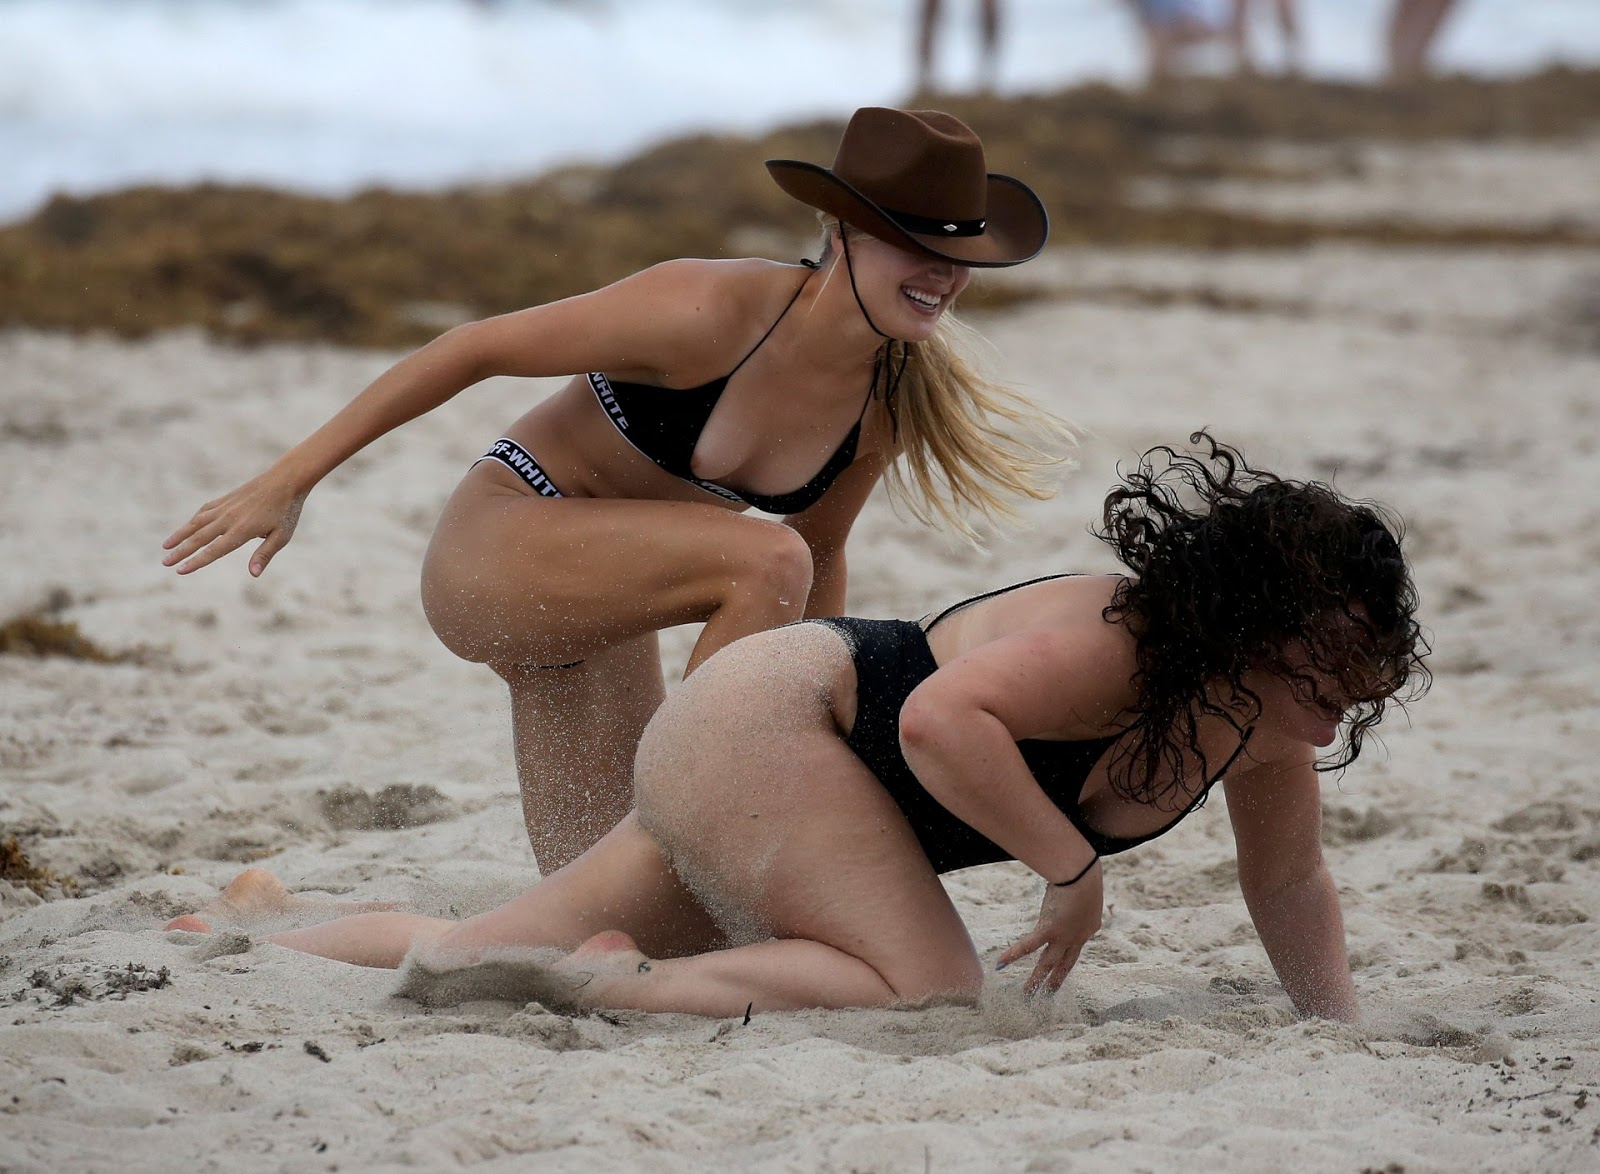 Eugenie Bouchard – Bikini Candids on the beach in Miami (Nipslip)